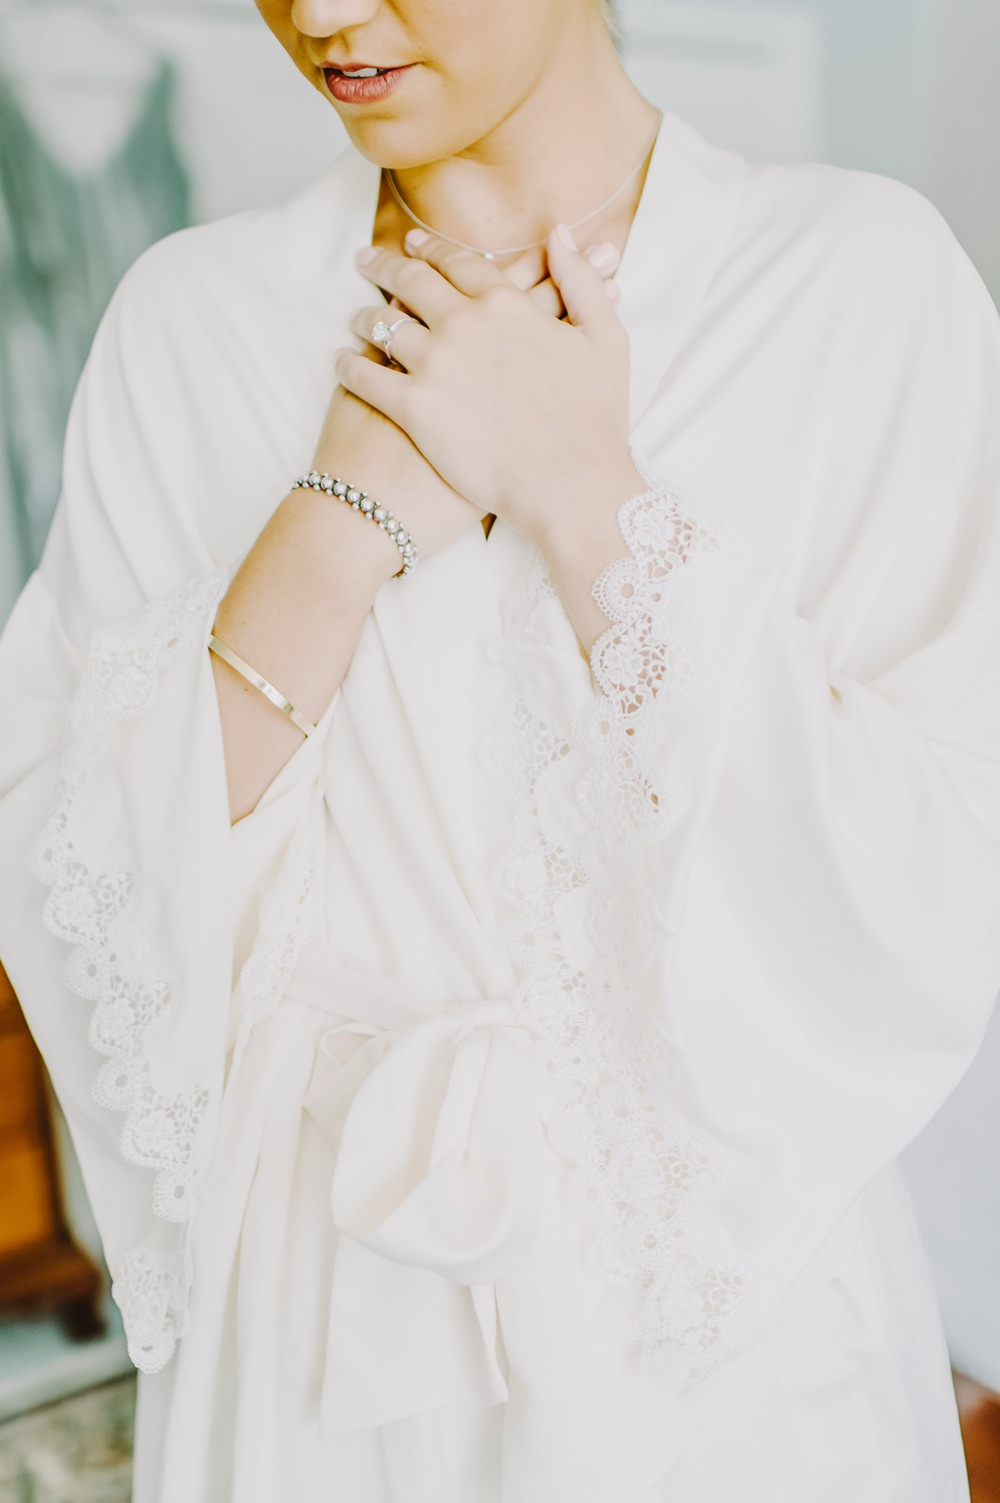 Dressing Gown Robe Bride Bridal Maryland Wedding L. Hewitt Photography